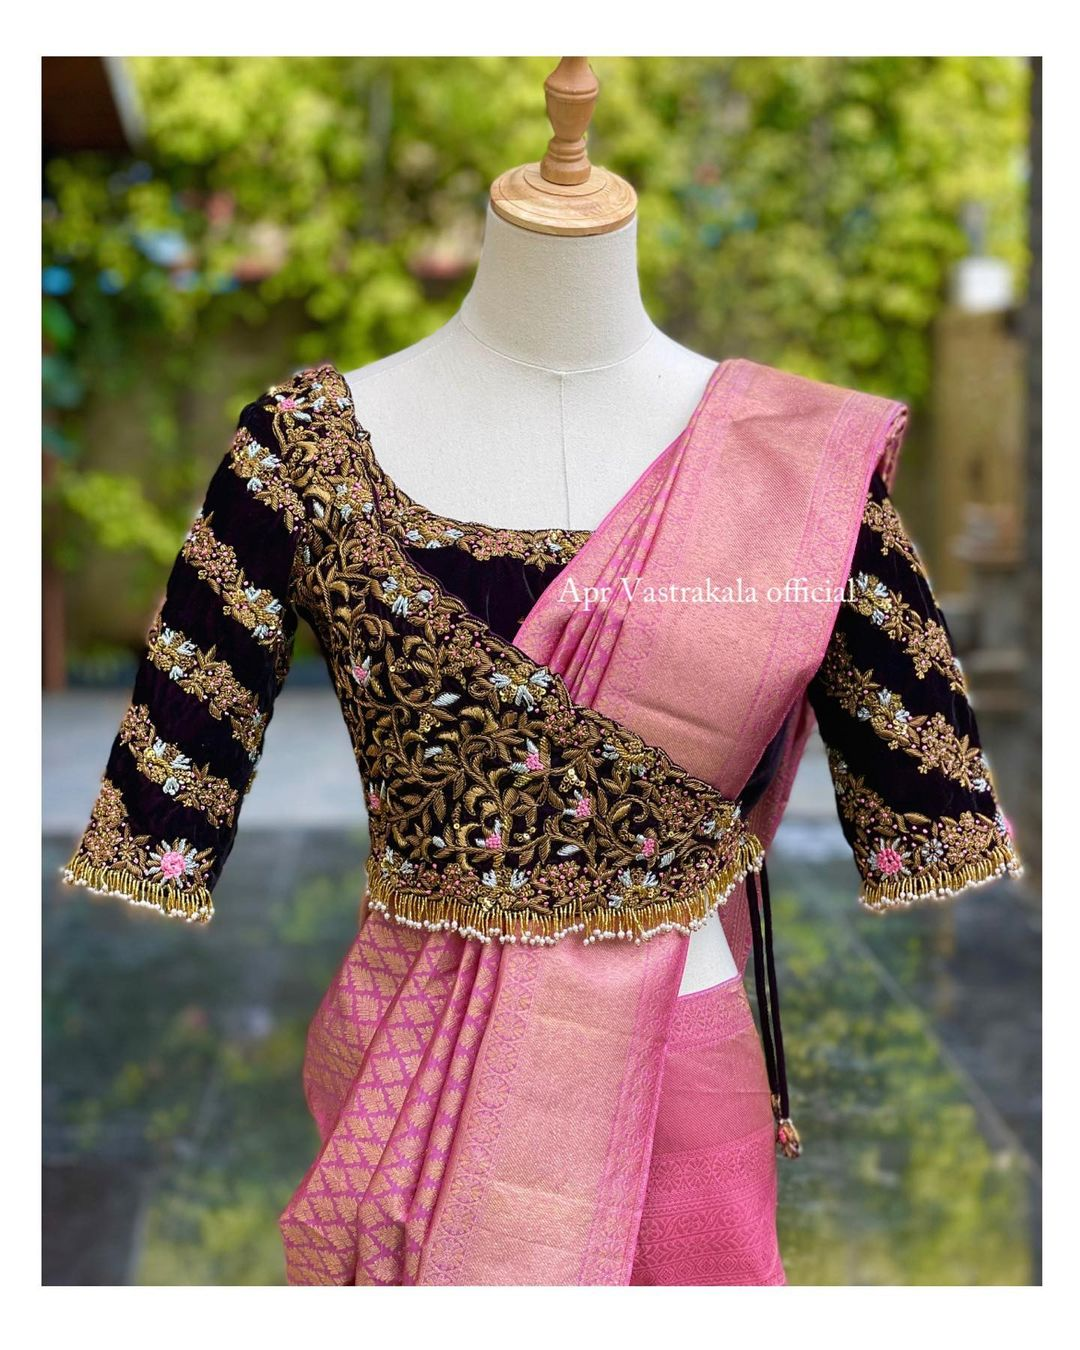 The overlap bridal blouse looks super stylish. Blouse with hand embroidery maggam work.  2021-07-18